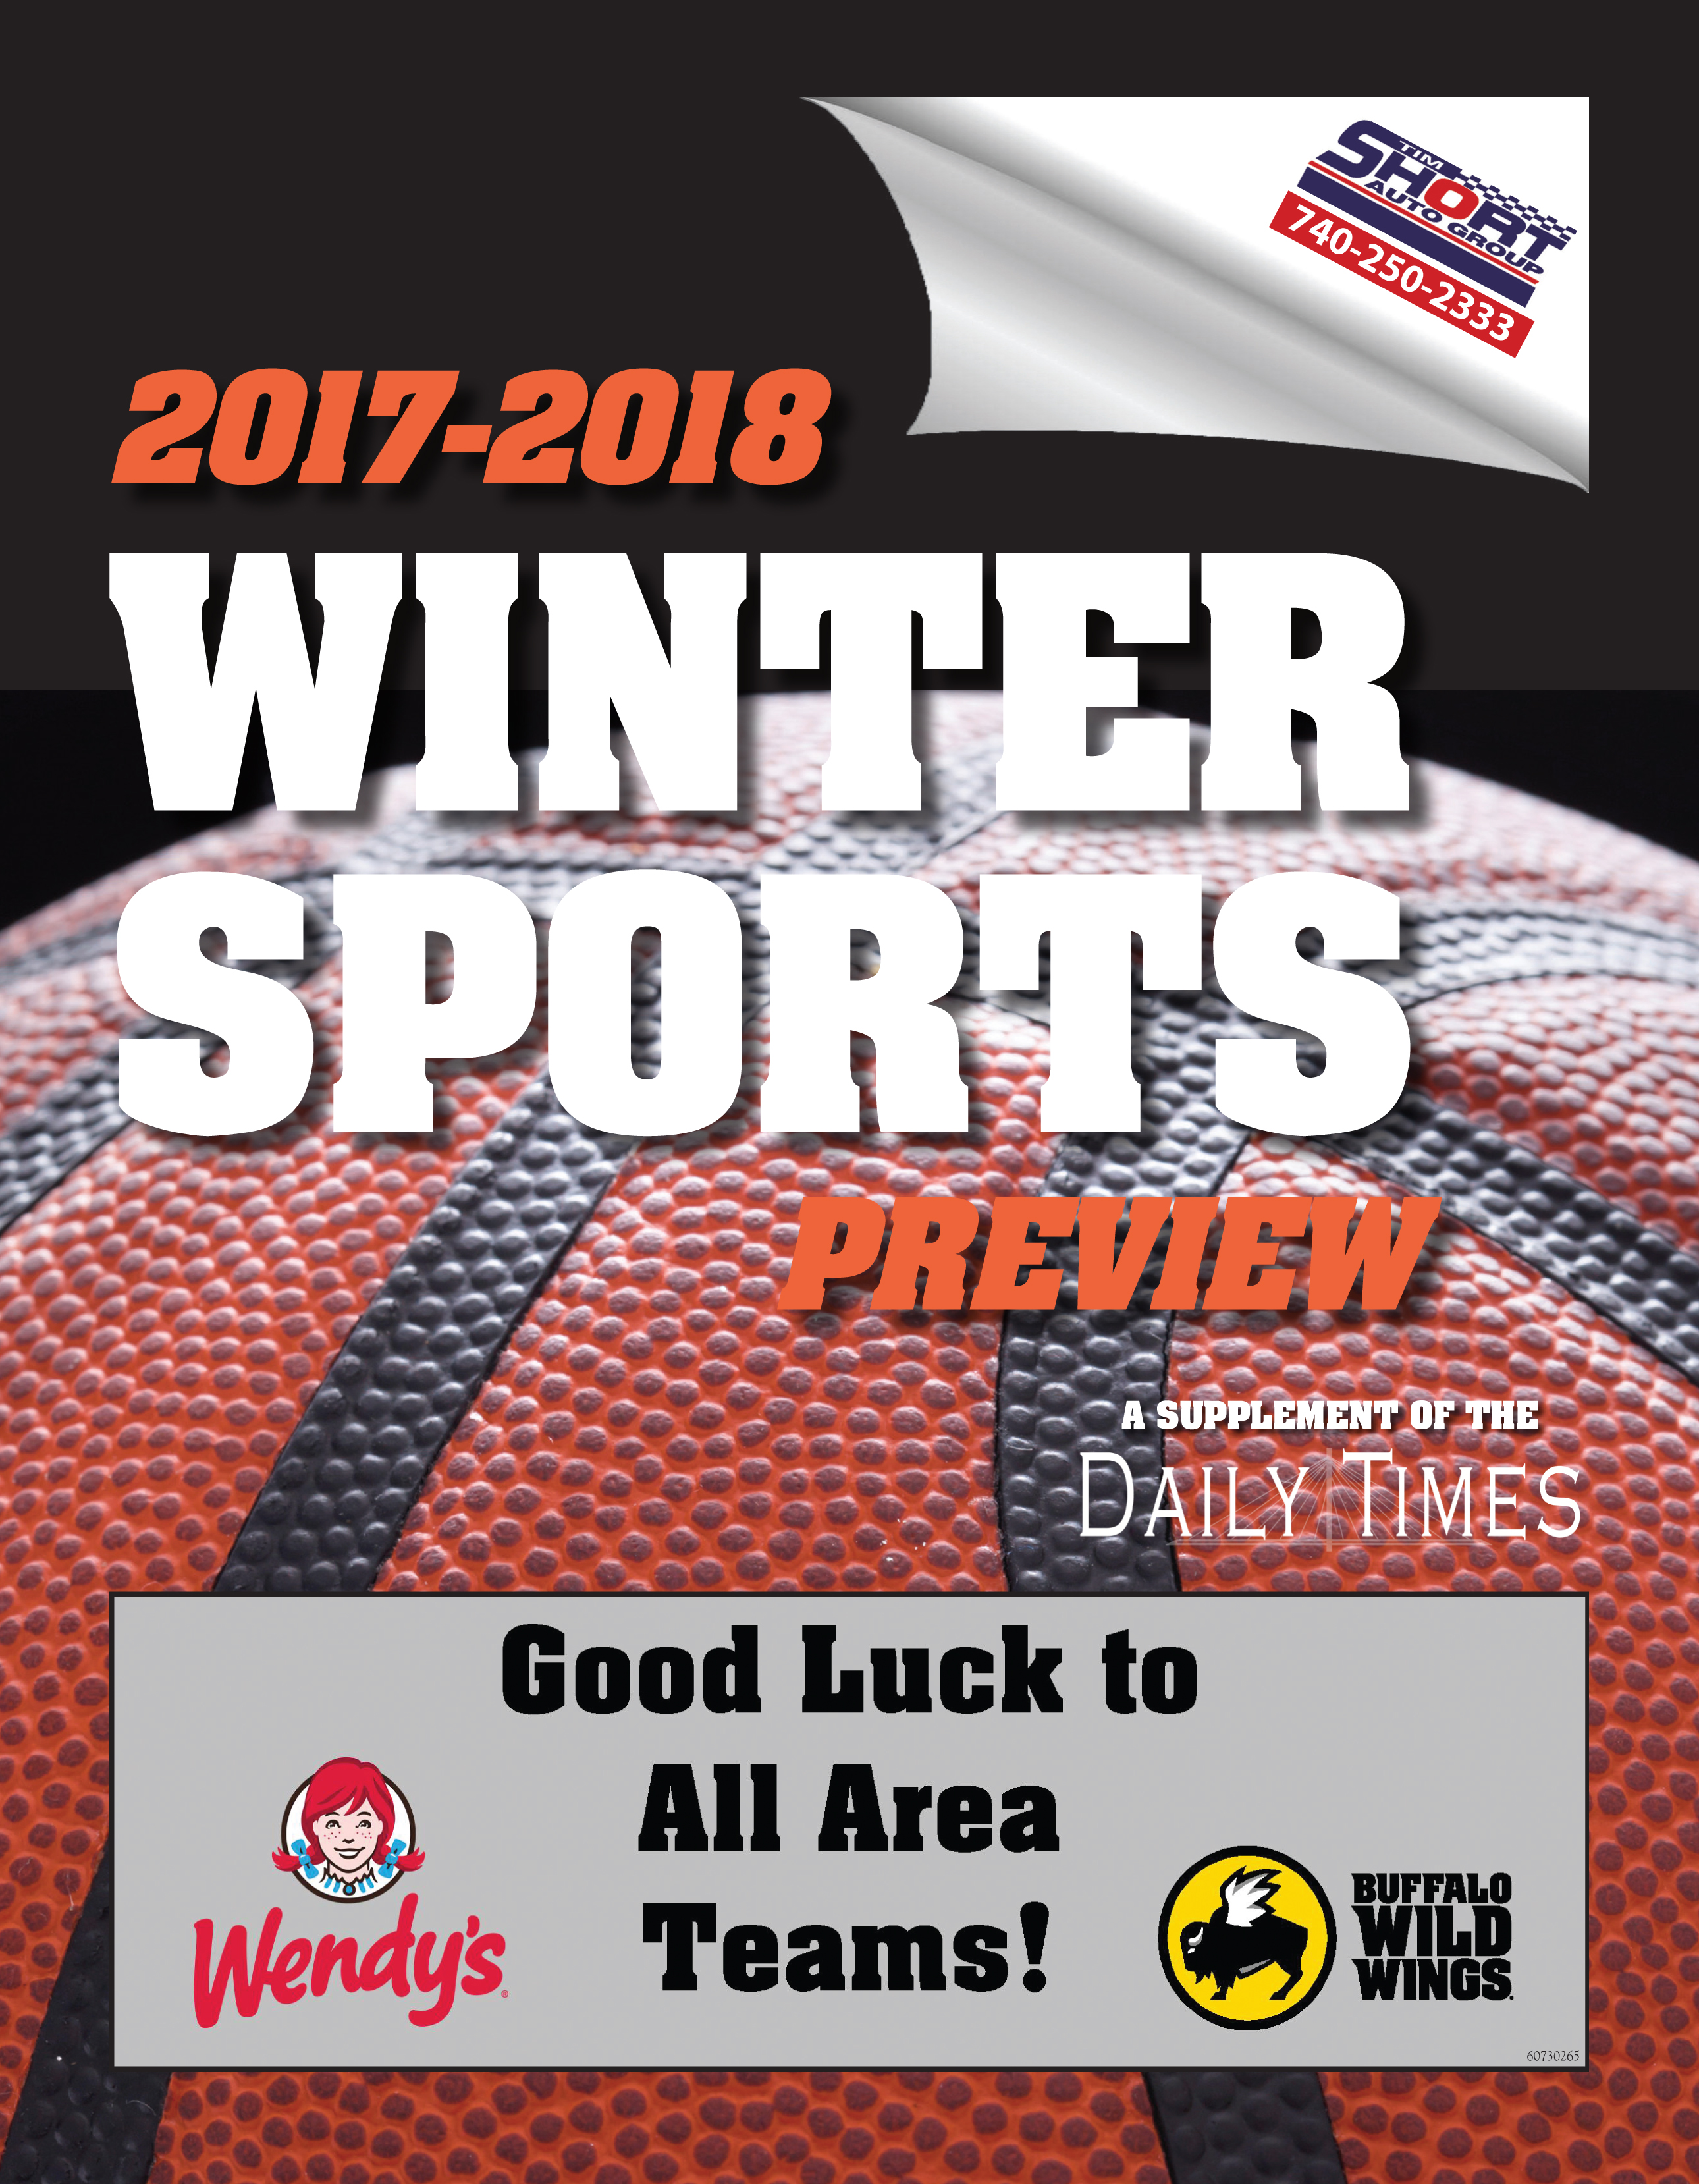 Winter Sports Preview 2017-18